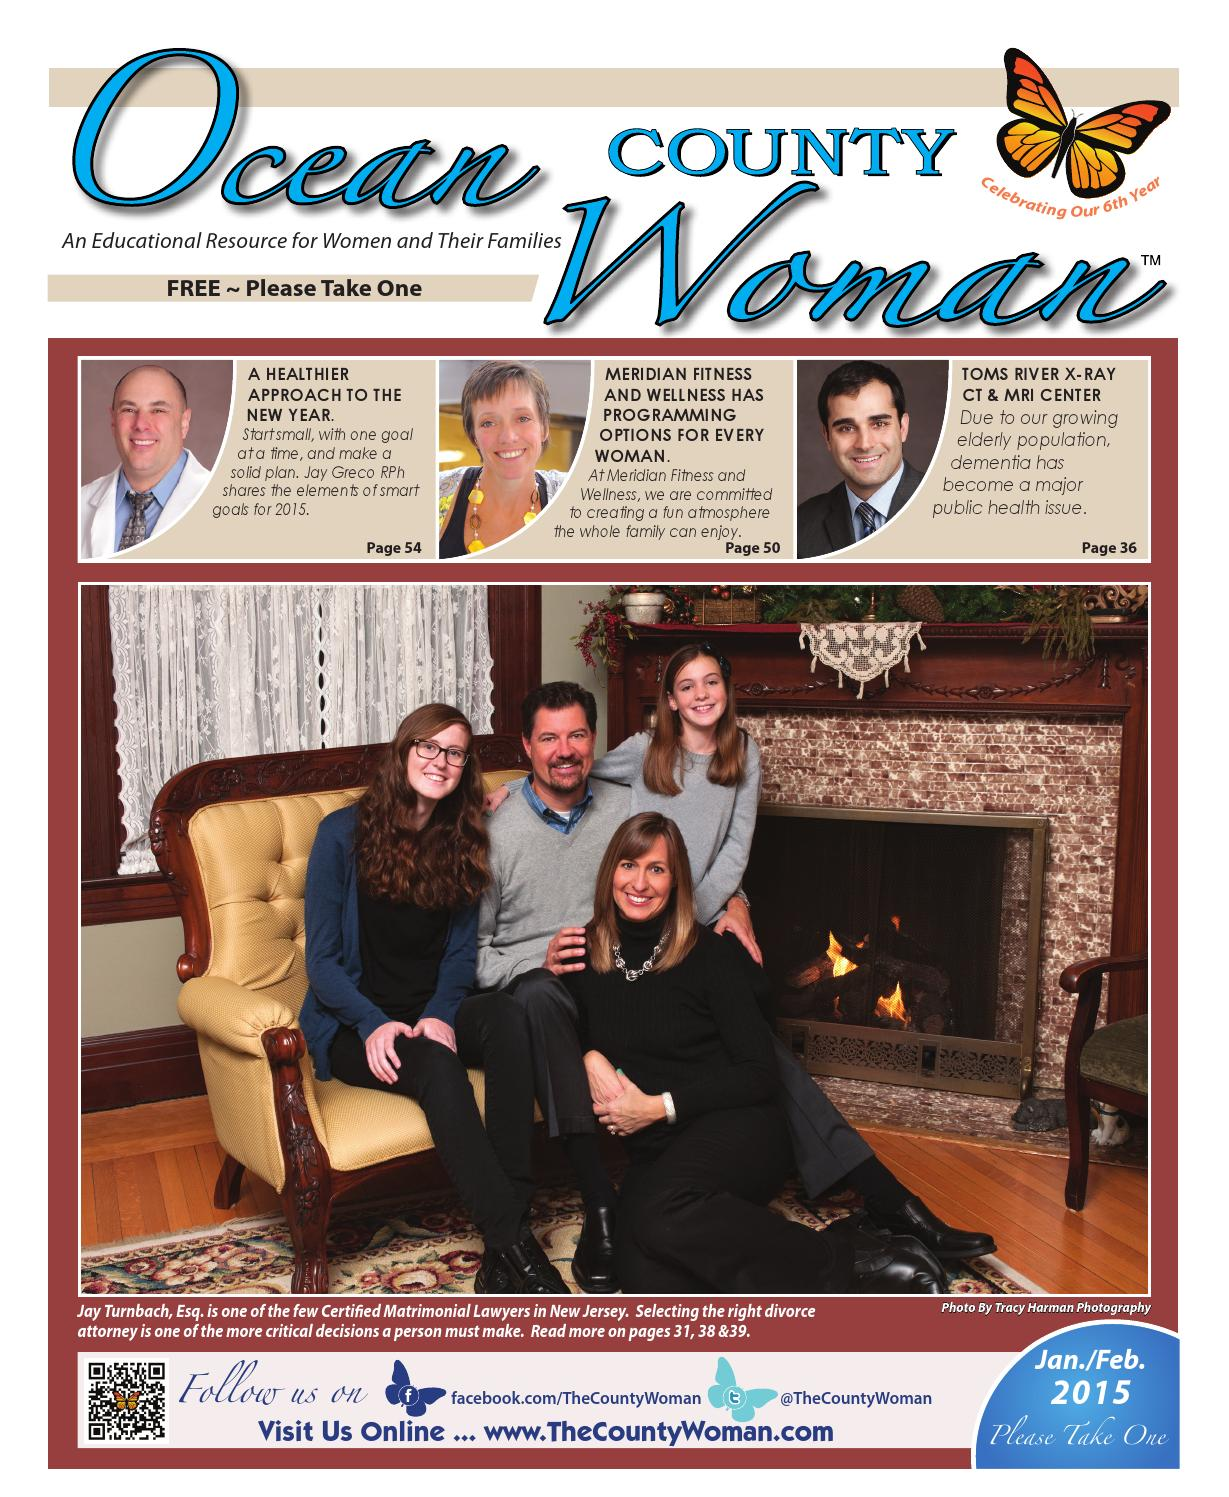 0ca6a1152bb1d Ocean County Woman - 2015 January February by The County Woman - issuu